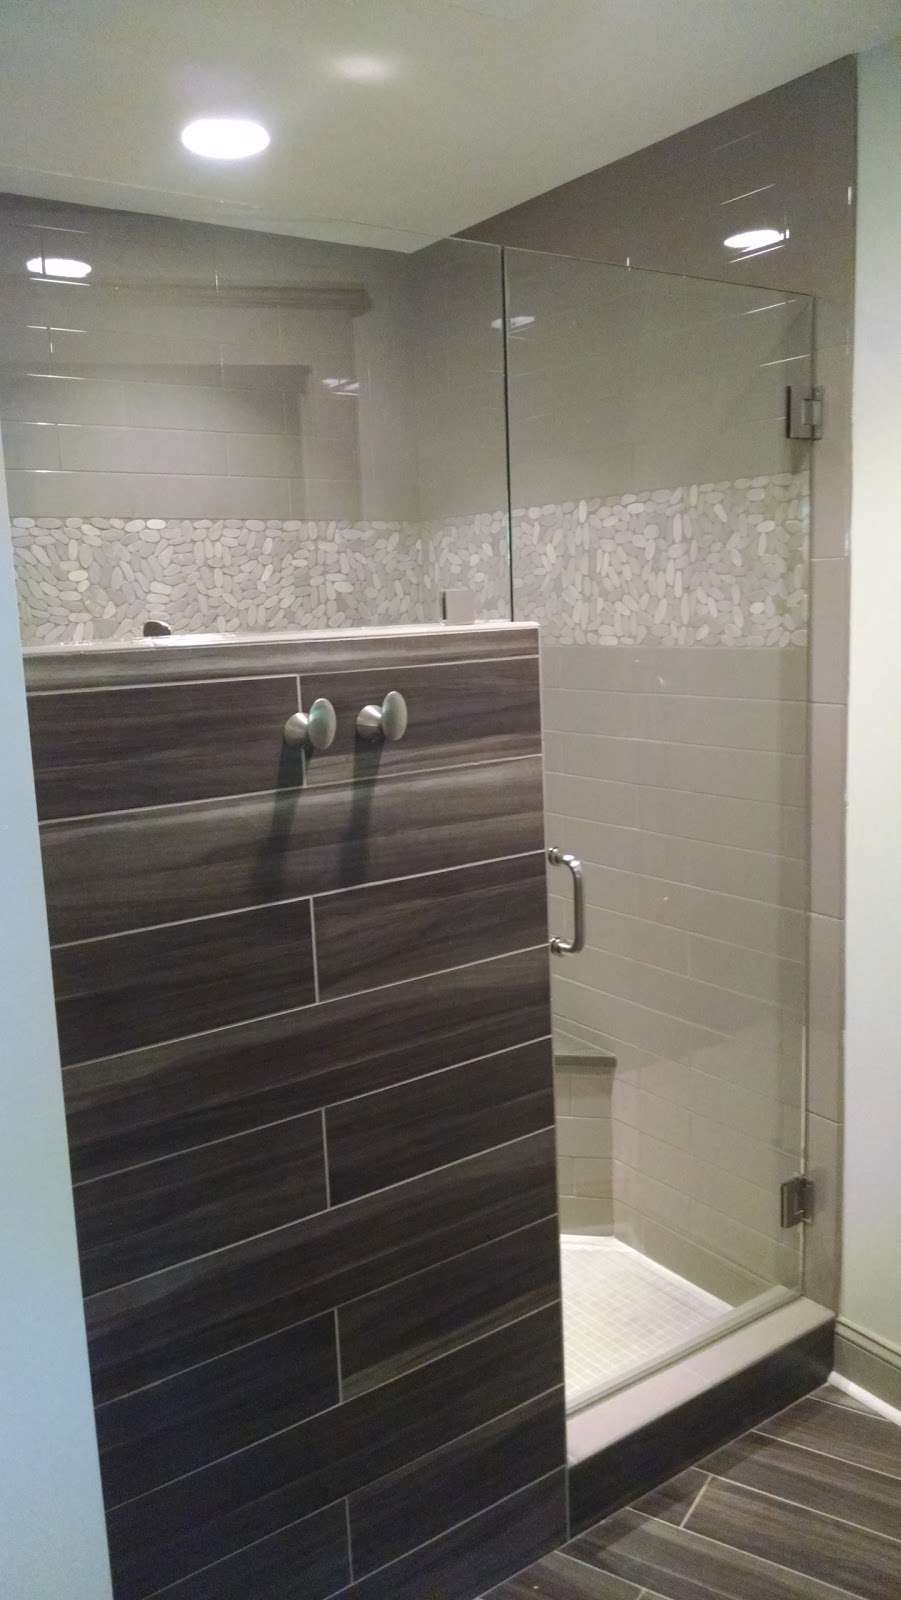 Iredell Glass & Mirror Inc -   | Photo 6 of 10 | Address: 1308 Barkley Rd N, Statesville, NC 28677, USA | Phone: (704) 872-8821